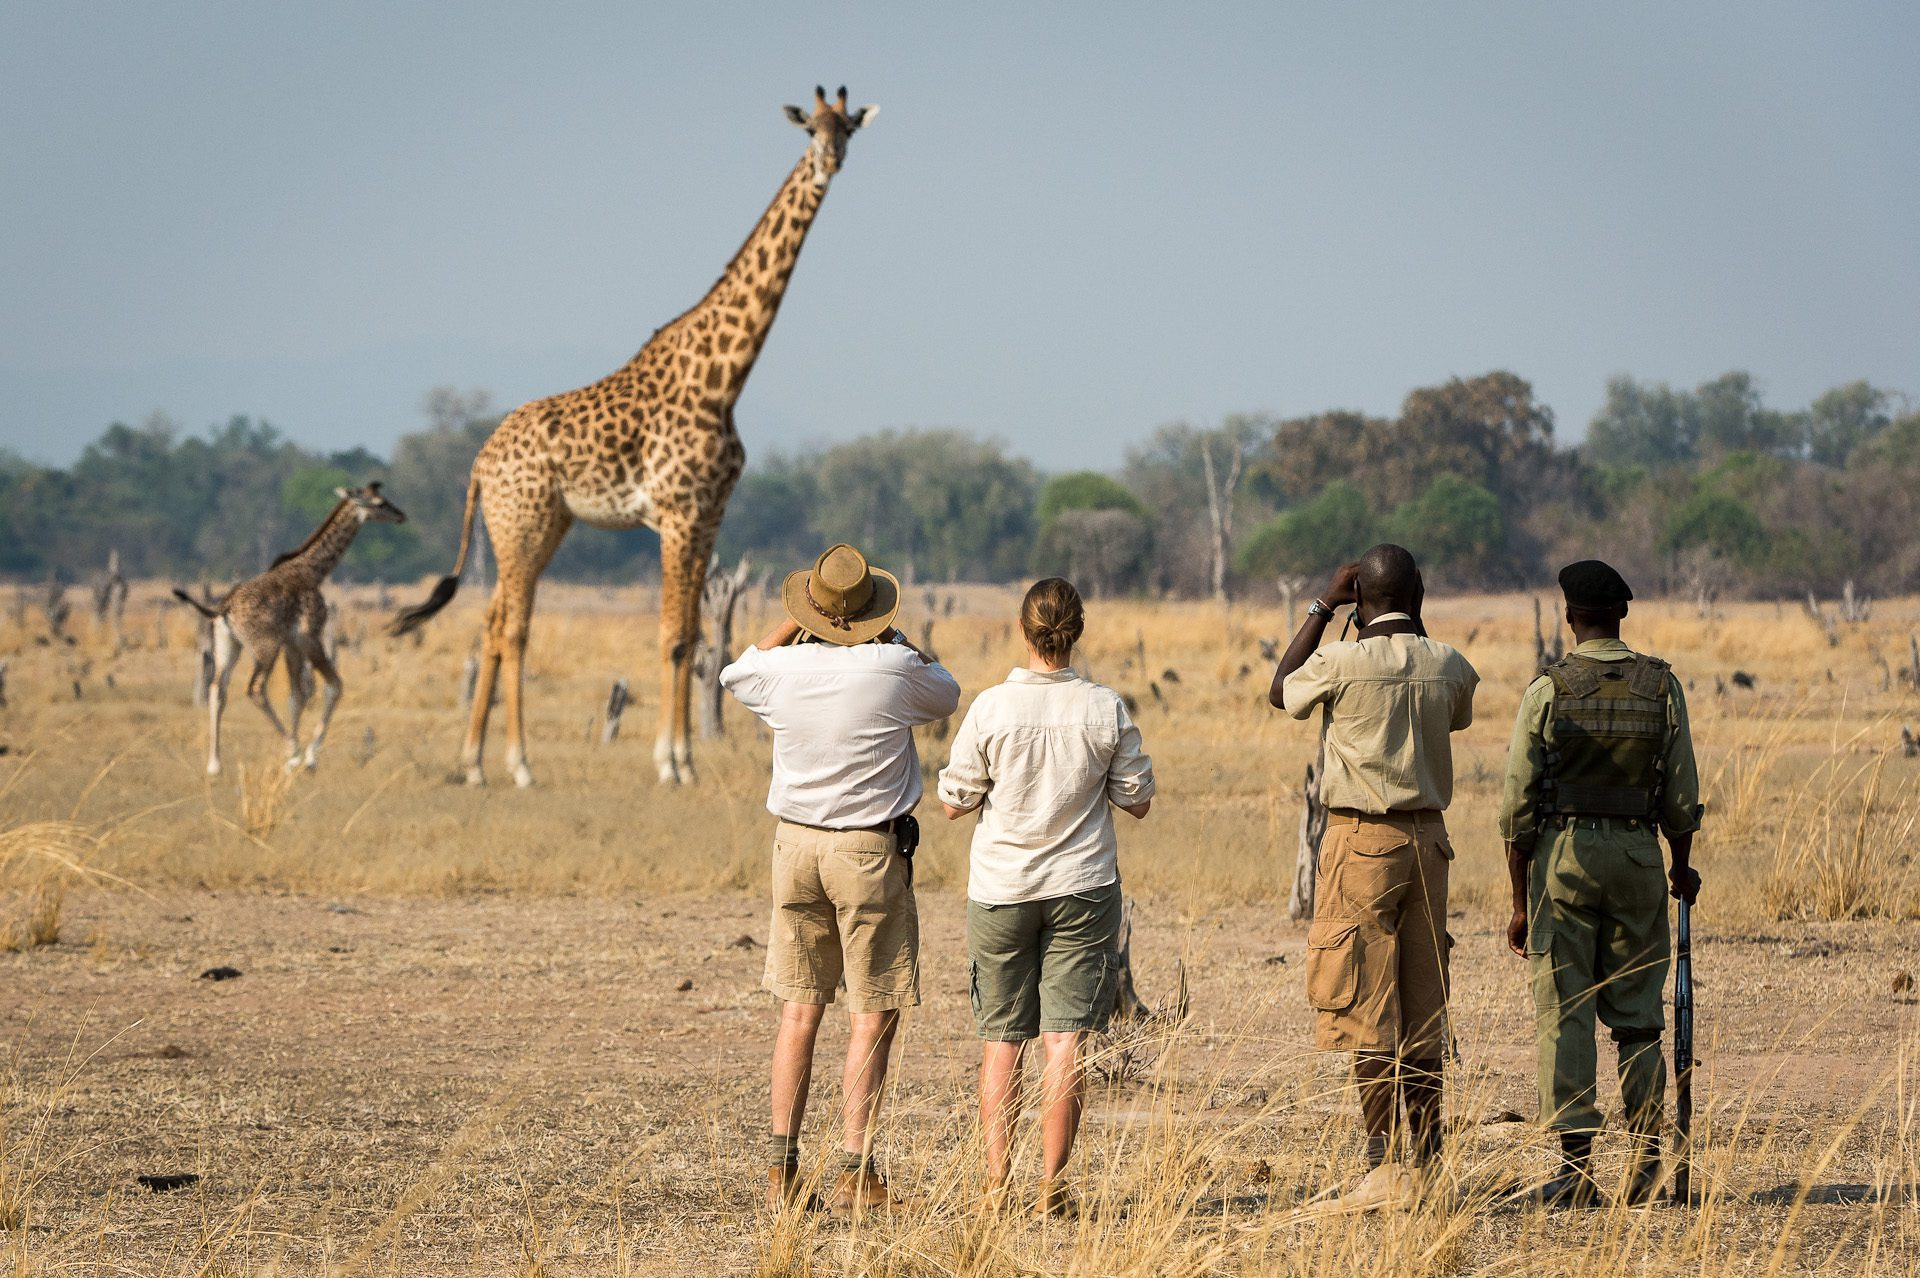 on our walking Zambia safari four people stopping to look at a giraffe on foot in South Luangwa